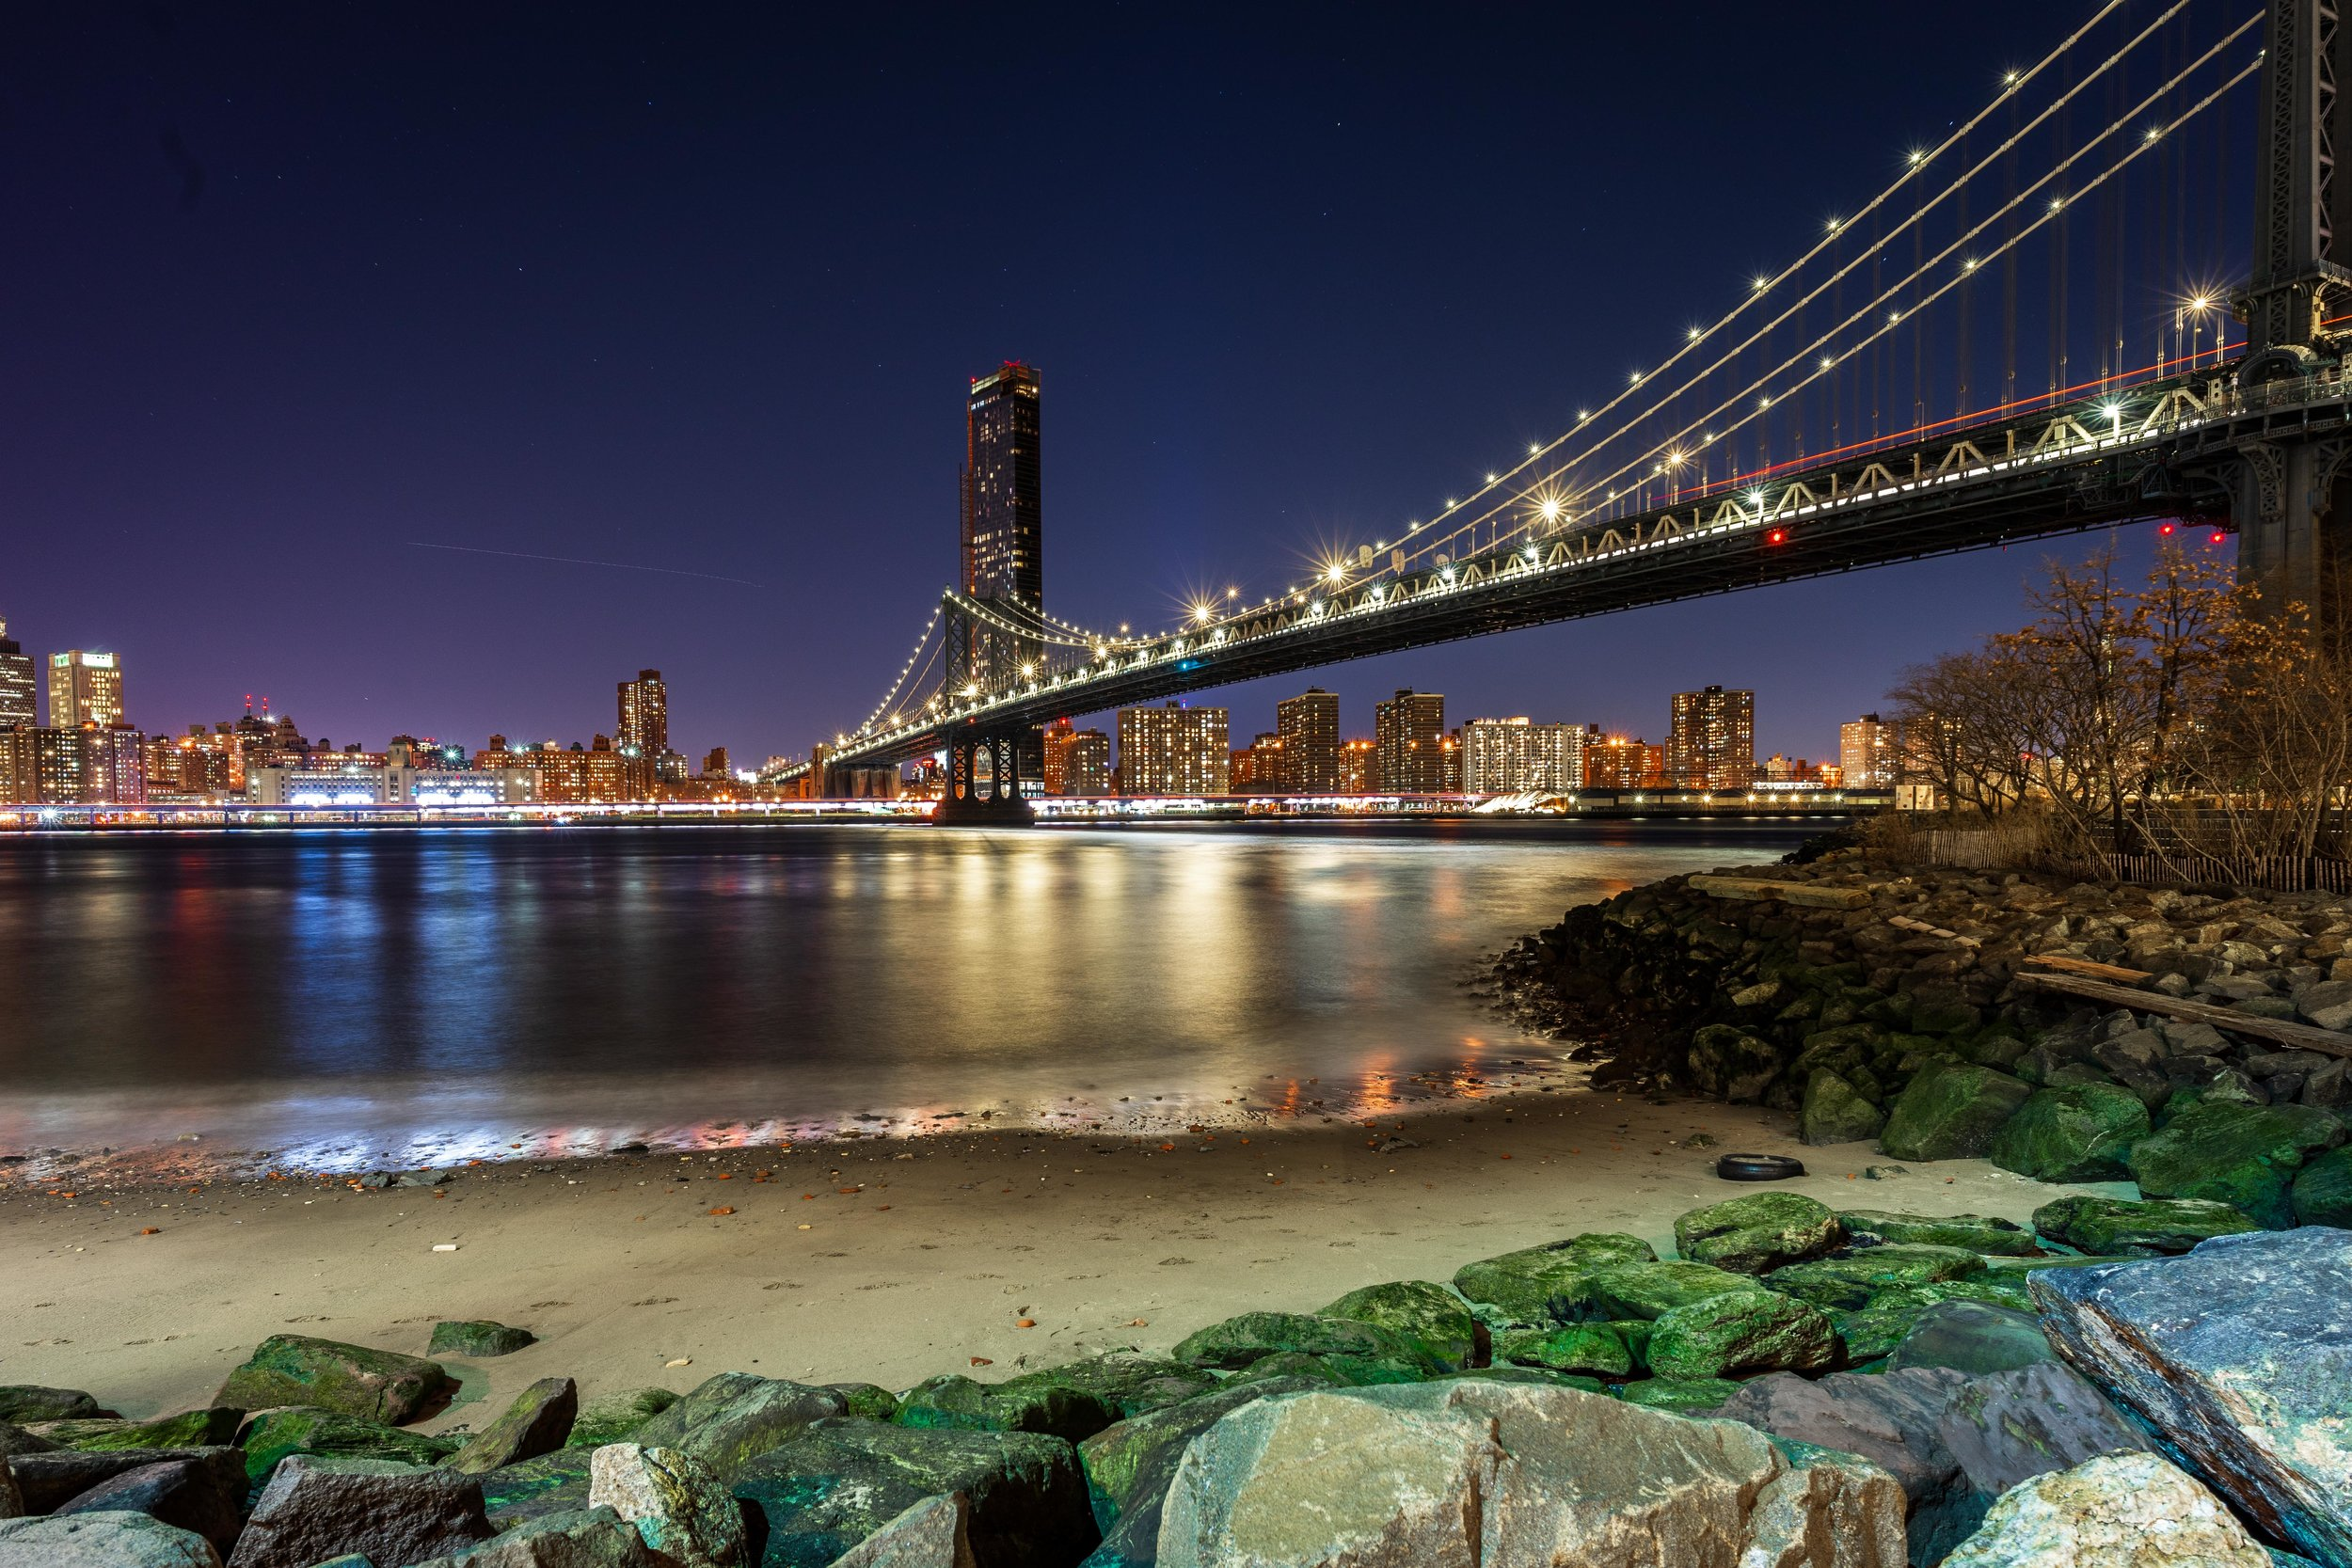 pebble beach new york Manhattan bridge.jpg